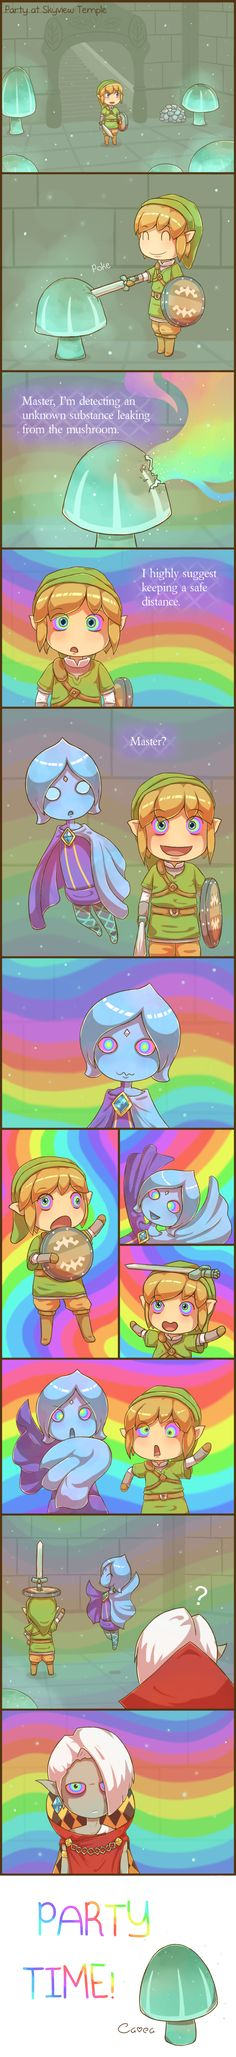 Skyward Sword: Party at Skyview Temple by *Cavea on deviantART (lol...)